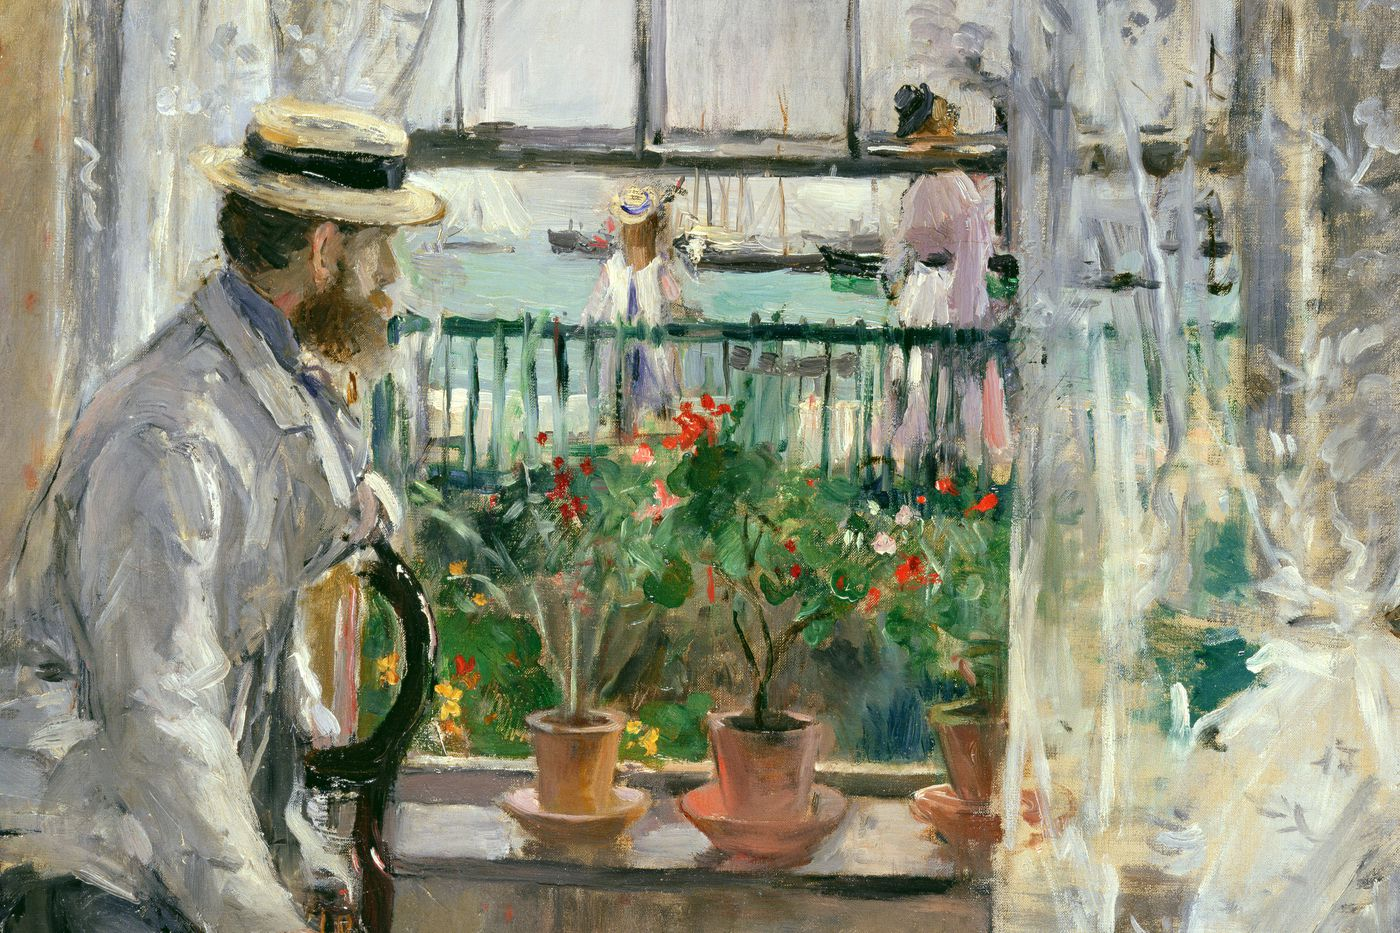 Calling Berthe Morisot a 'woman impressionist' in a show opening at the Barnes grates on the ears of artists and museum goers